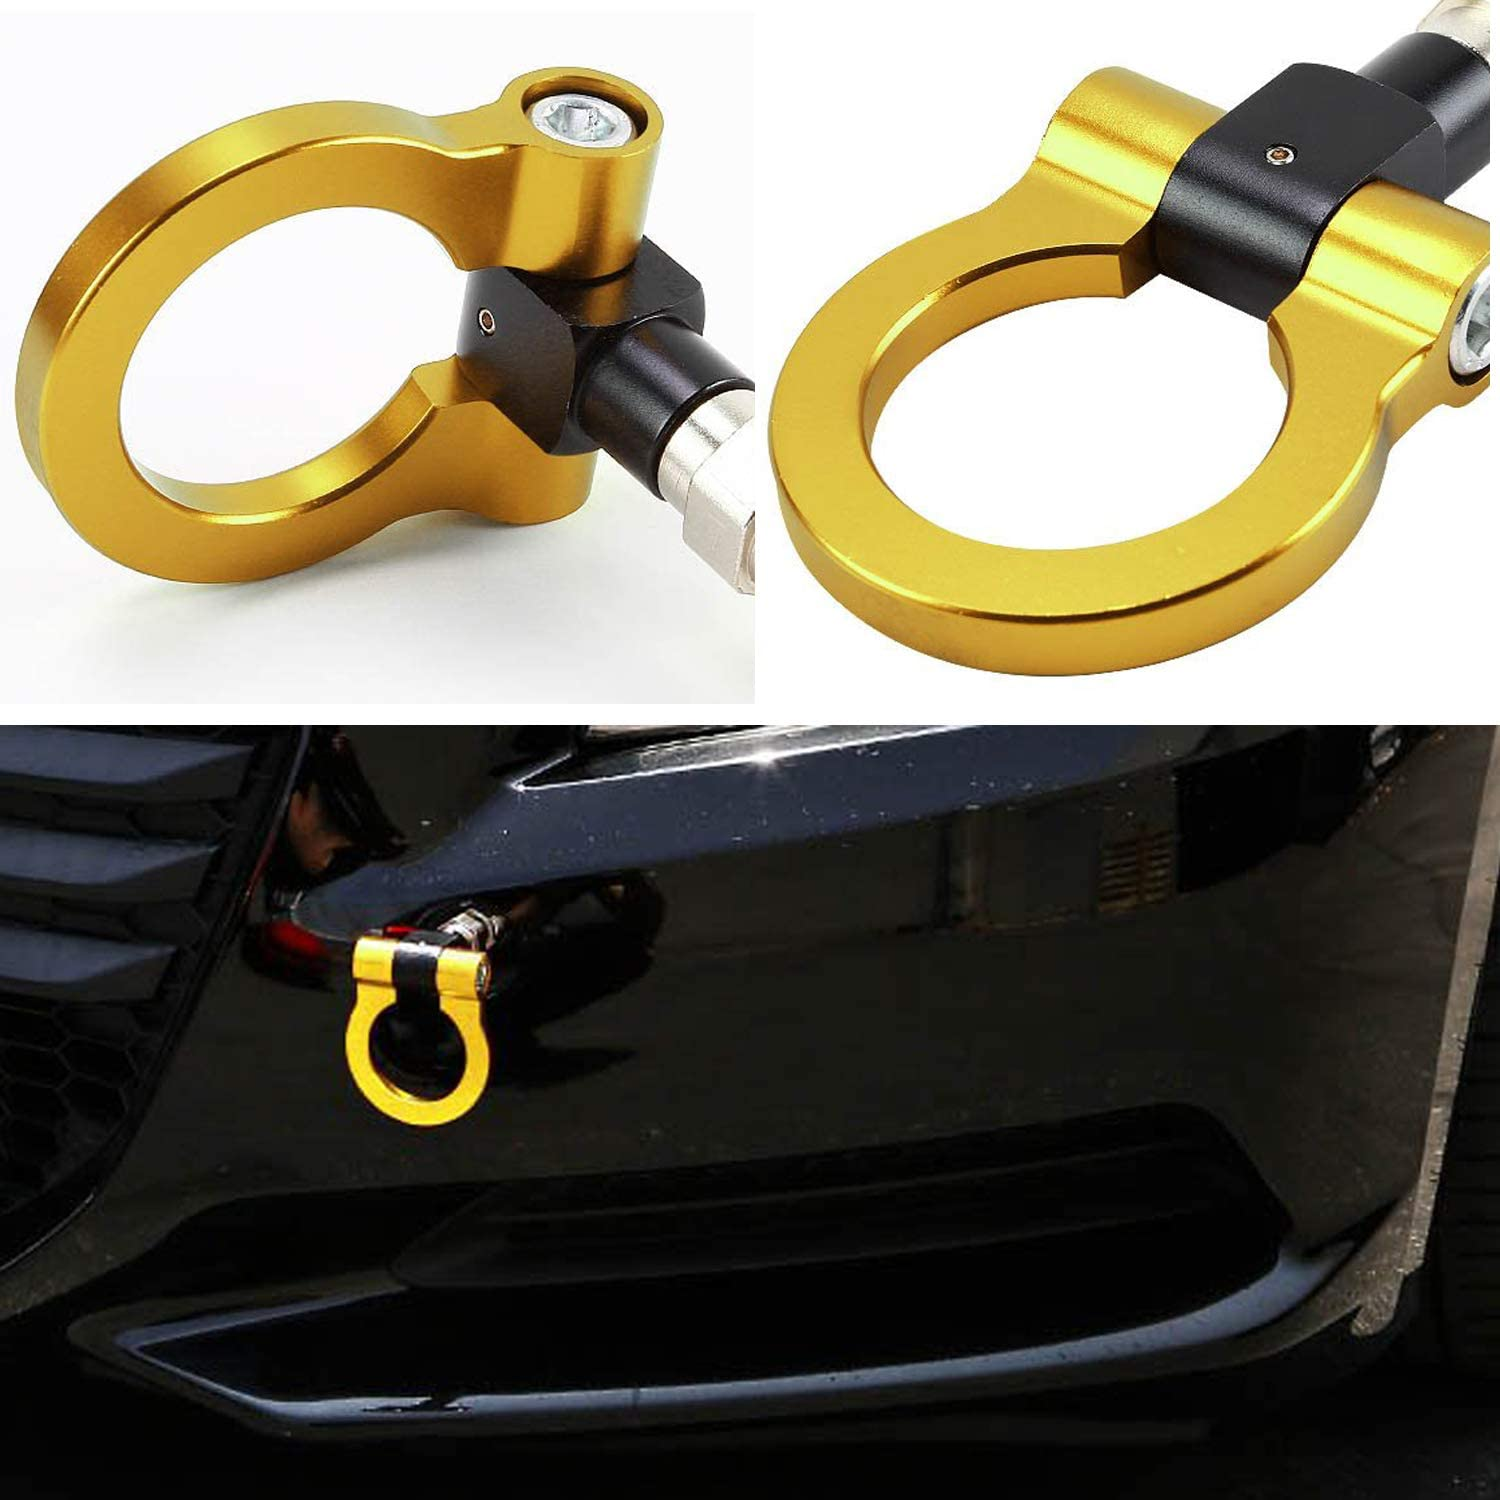 Heart Horse Universal Car Front Bumper Screw-on Tow Hook Aluminum 16mm Tow Hook Front Rear Racing Style for European Cars